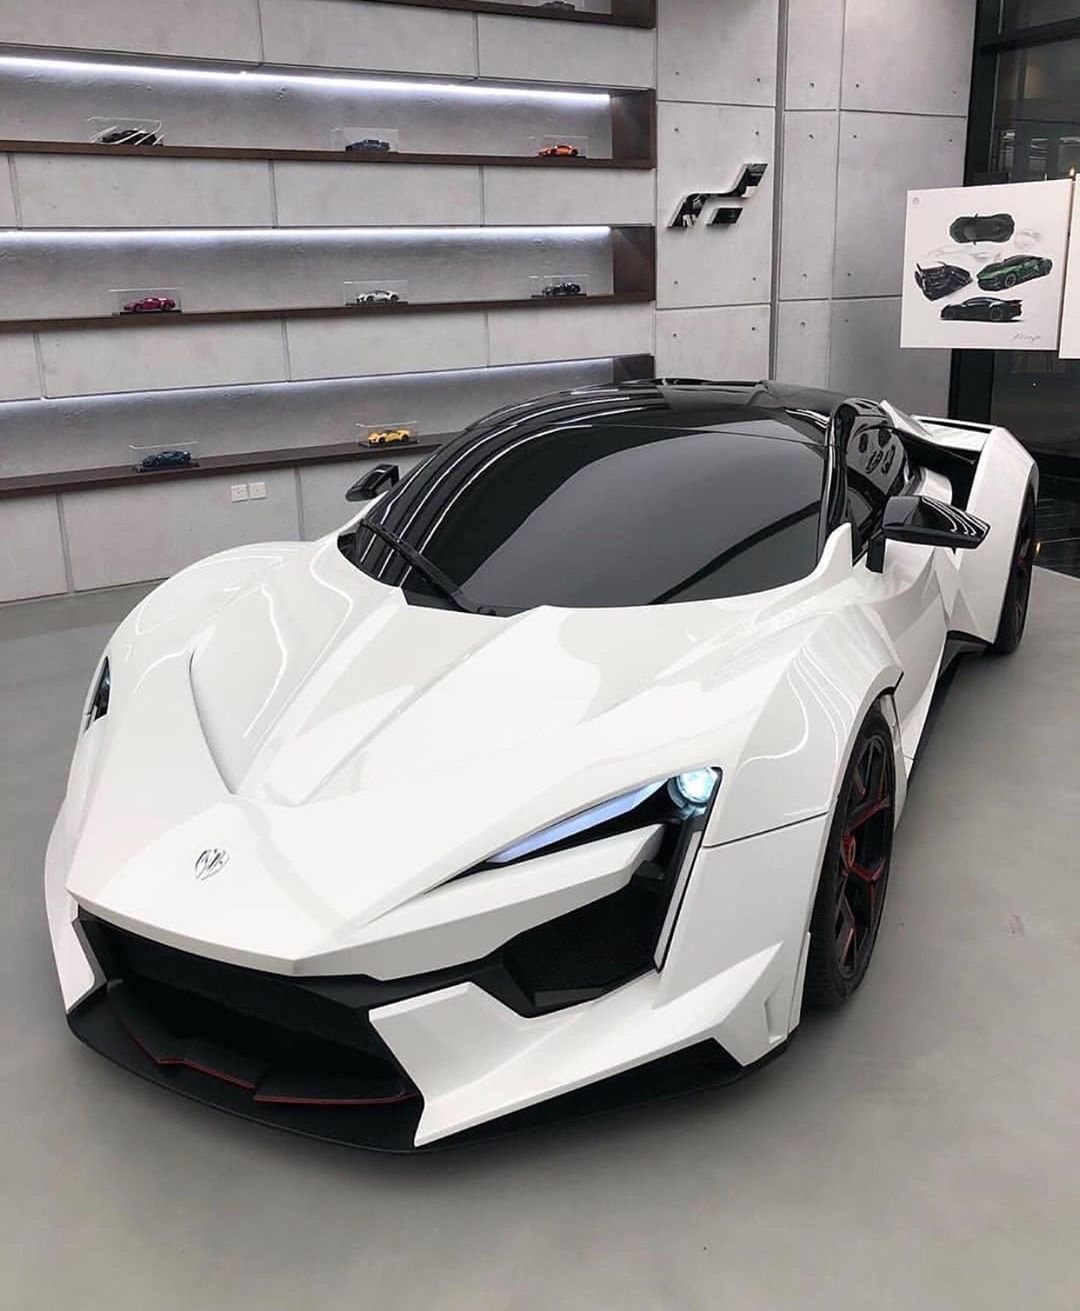 5 Exotic Cars You Have to Drive Before You Die